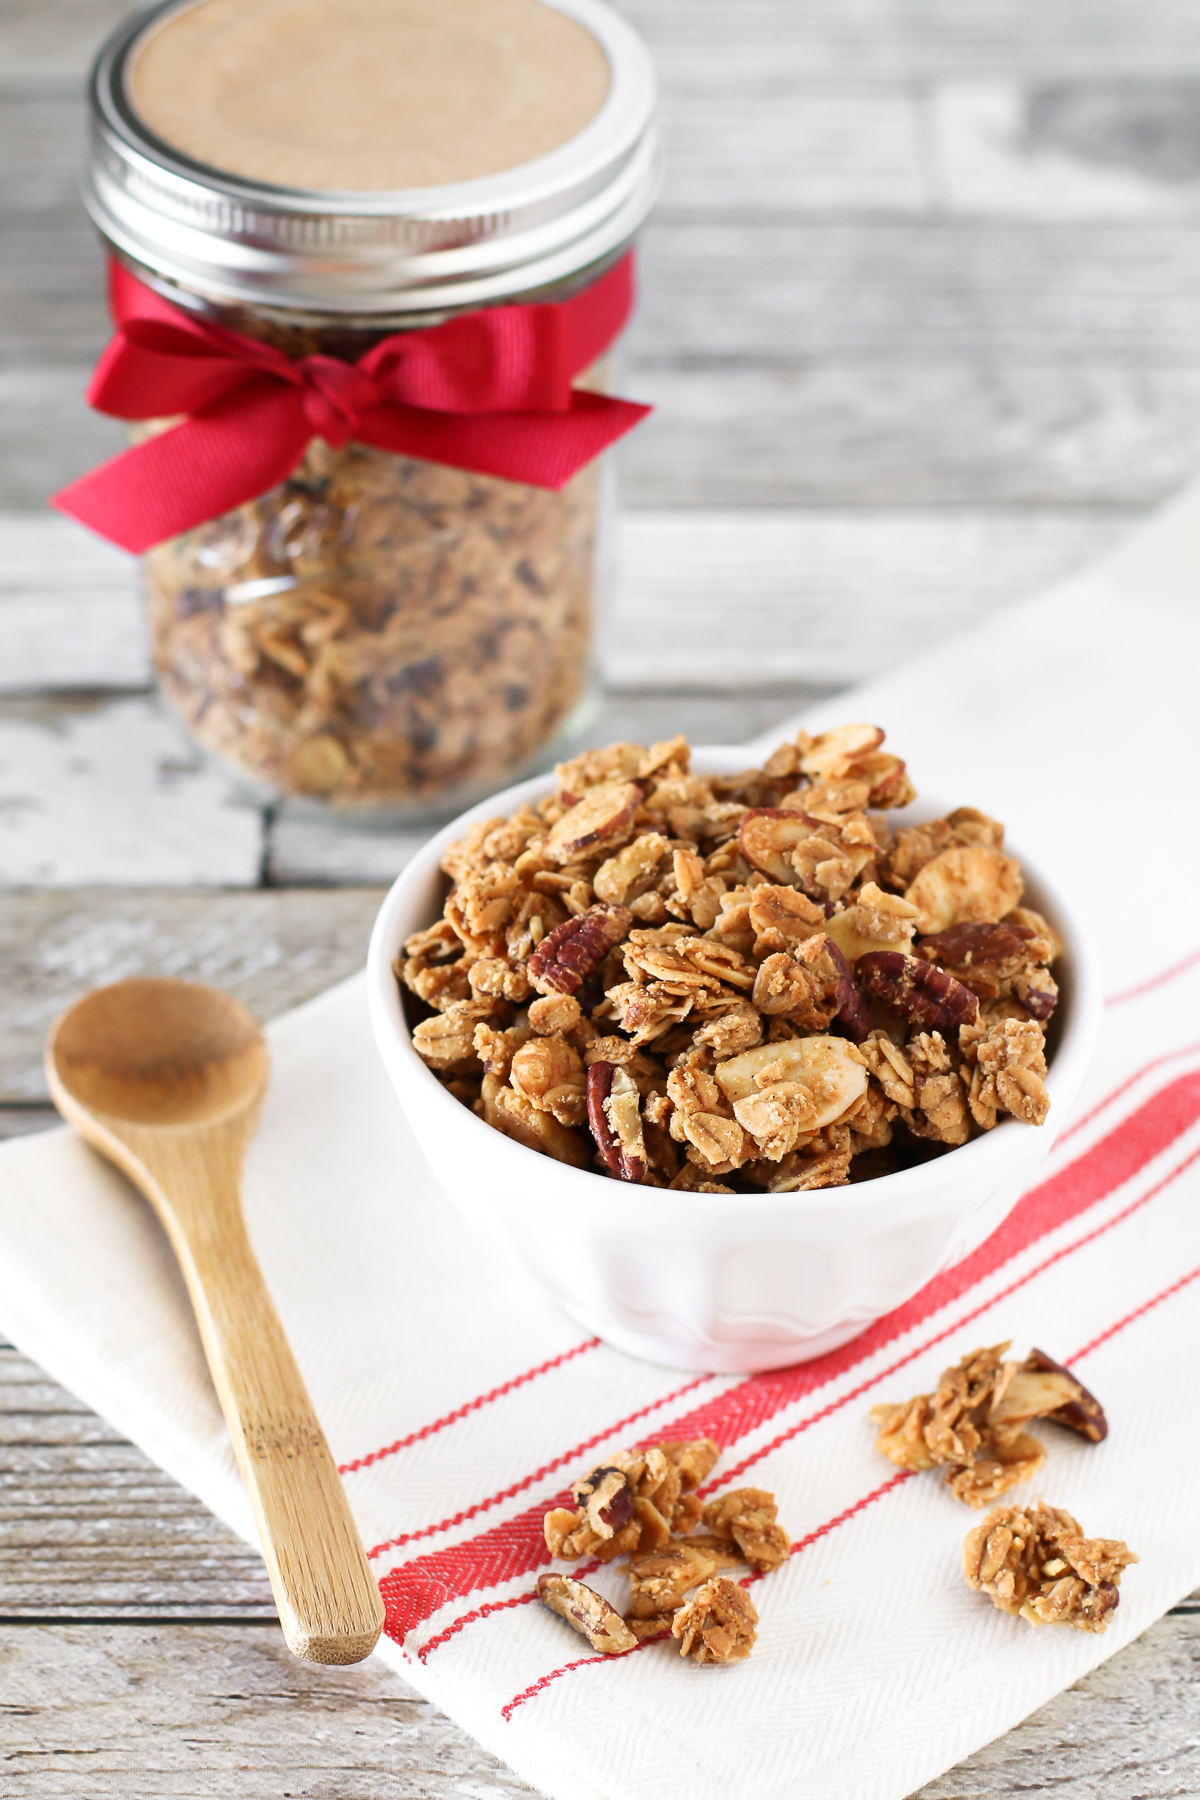 Gluten Free Holiday Spice Granola. With the addition of cinnamon, nutmeg, allspice and ginger, this granola is bursting with holiday spice!